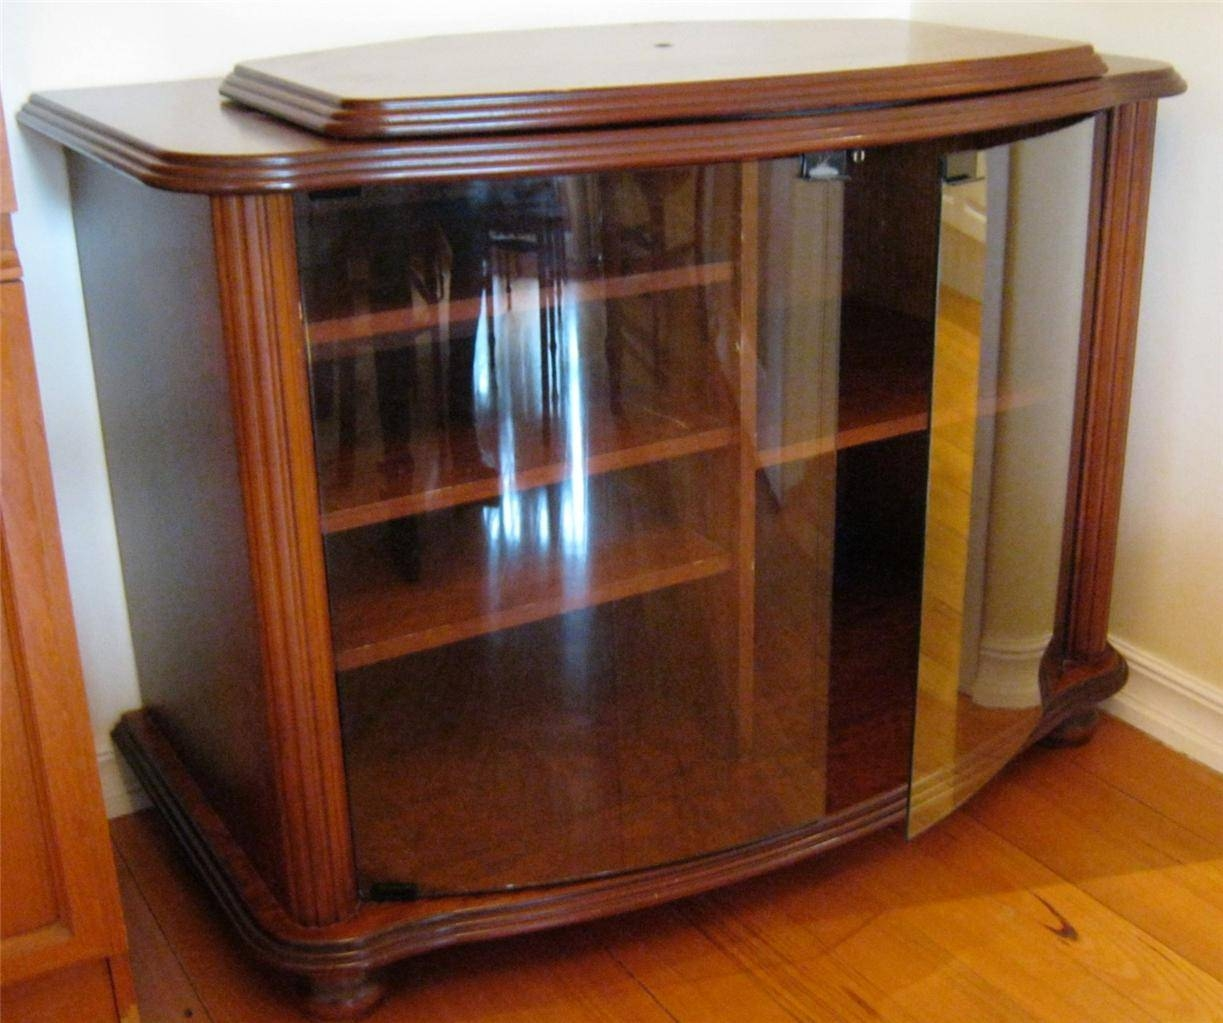 Corner Tv Stand Cabinet With Frameless Glass Doors - Decofurnish pertaining to Corner Tv Cabinets With Glass Doors (Image 3 of 15)